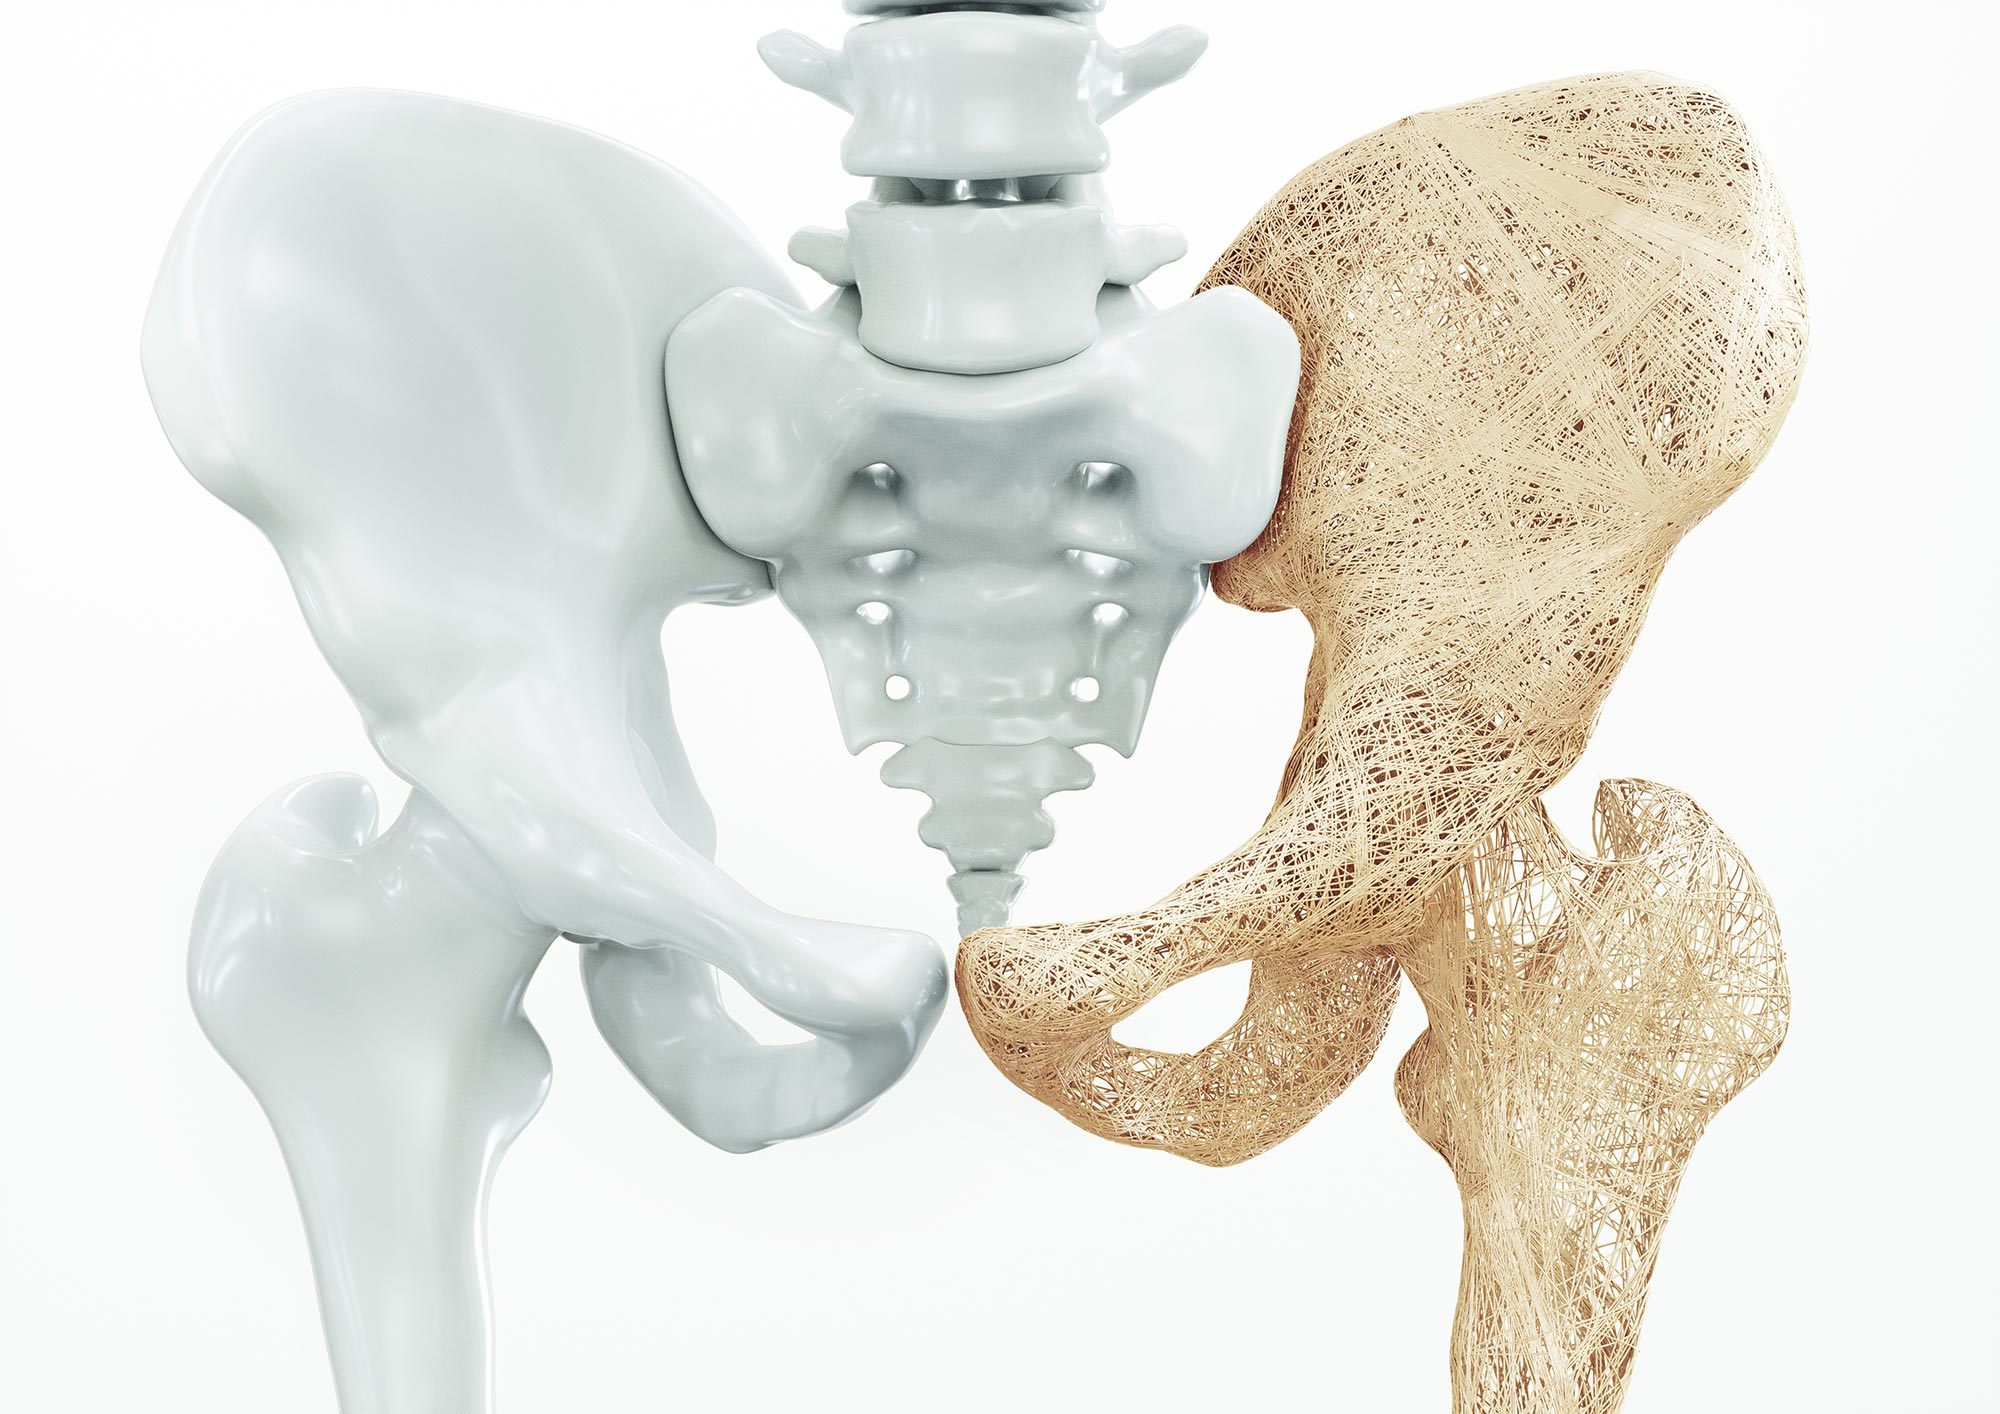 Statins Could Increase Or Decrease Osteoporosis Risk